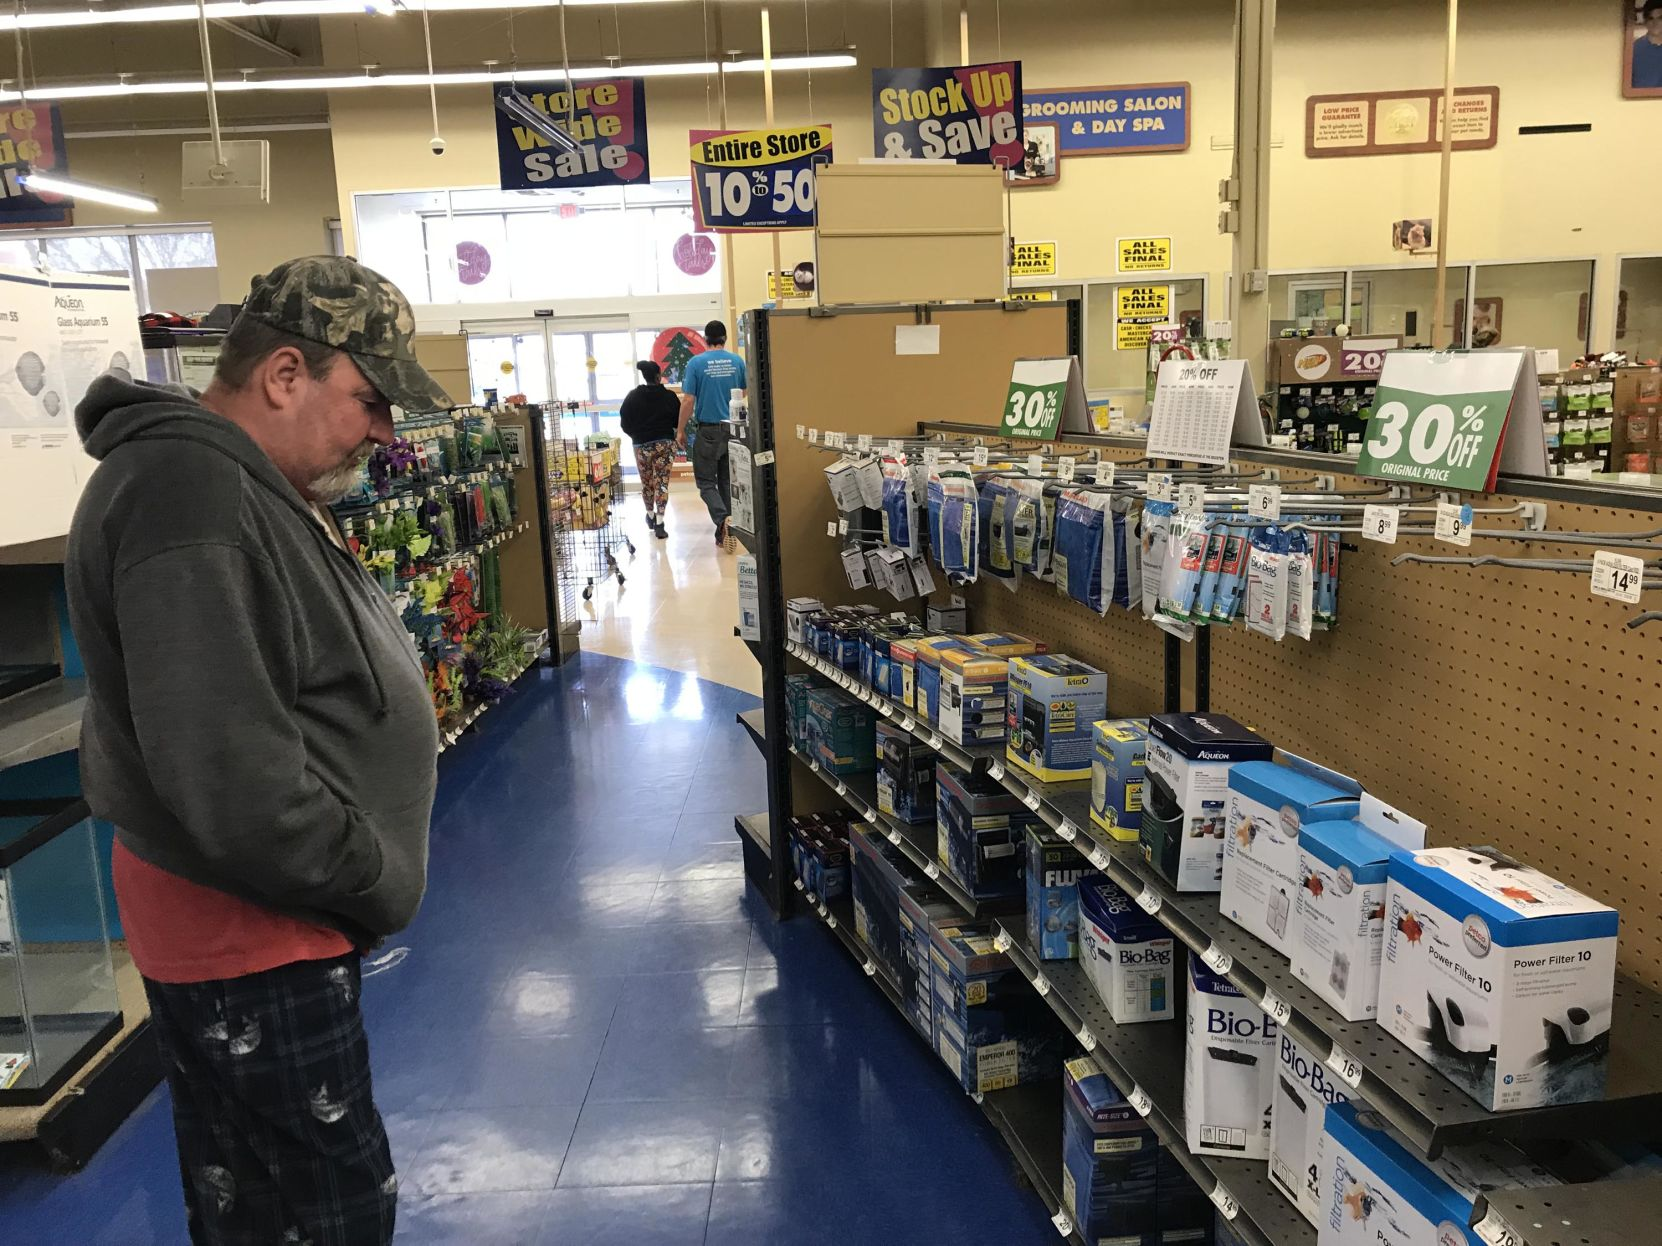 Store En Stock Petco Becomes Latest Retailer To Close Up Shop In Danville Last